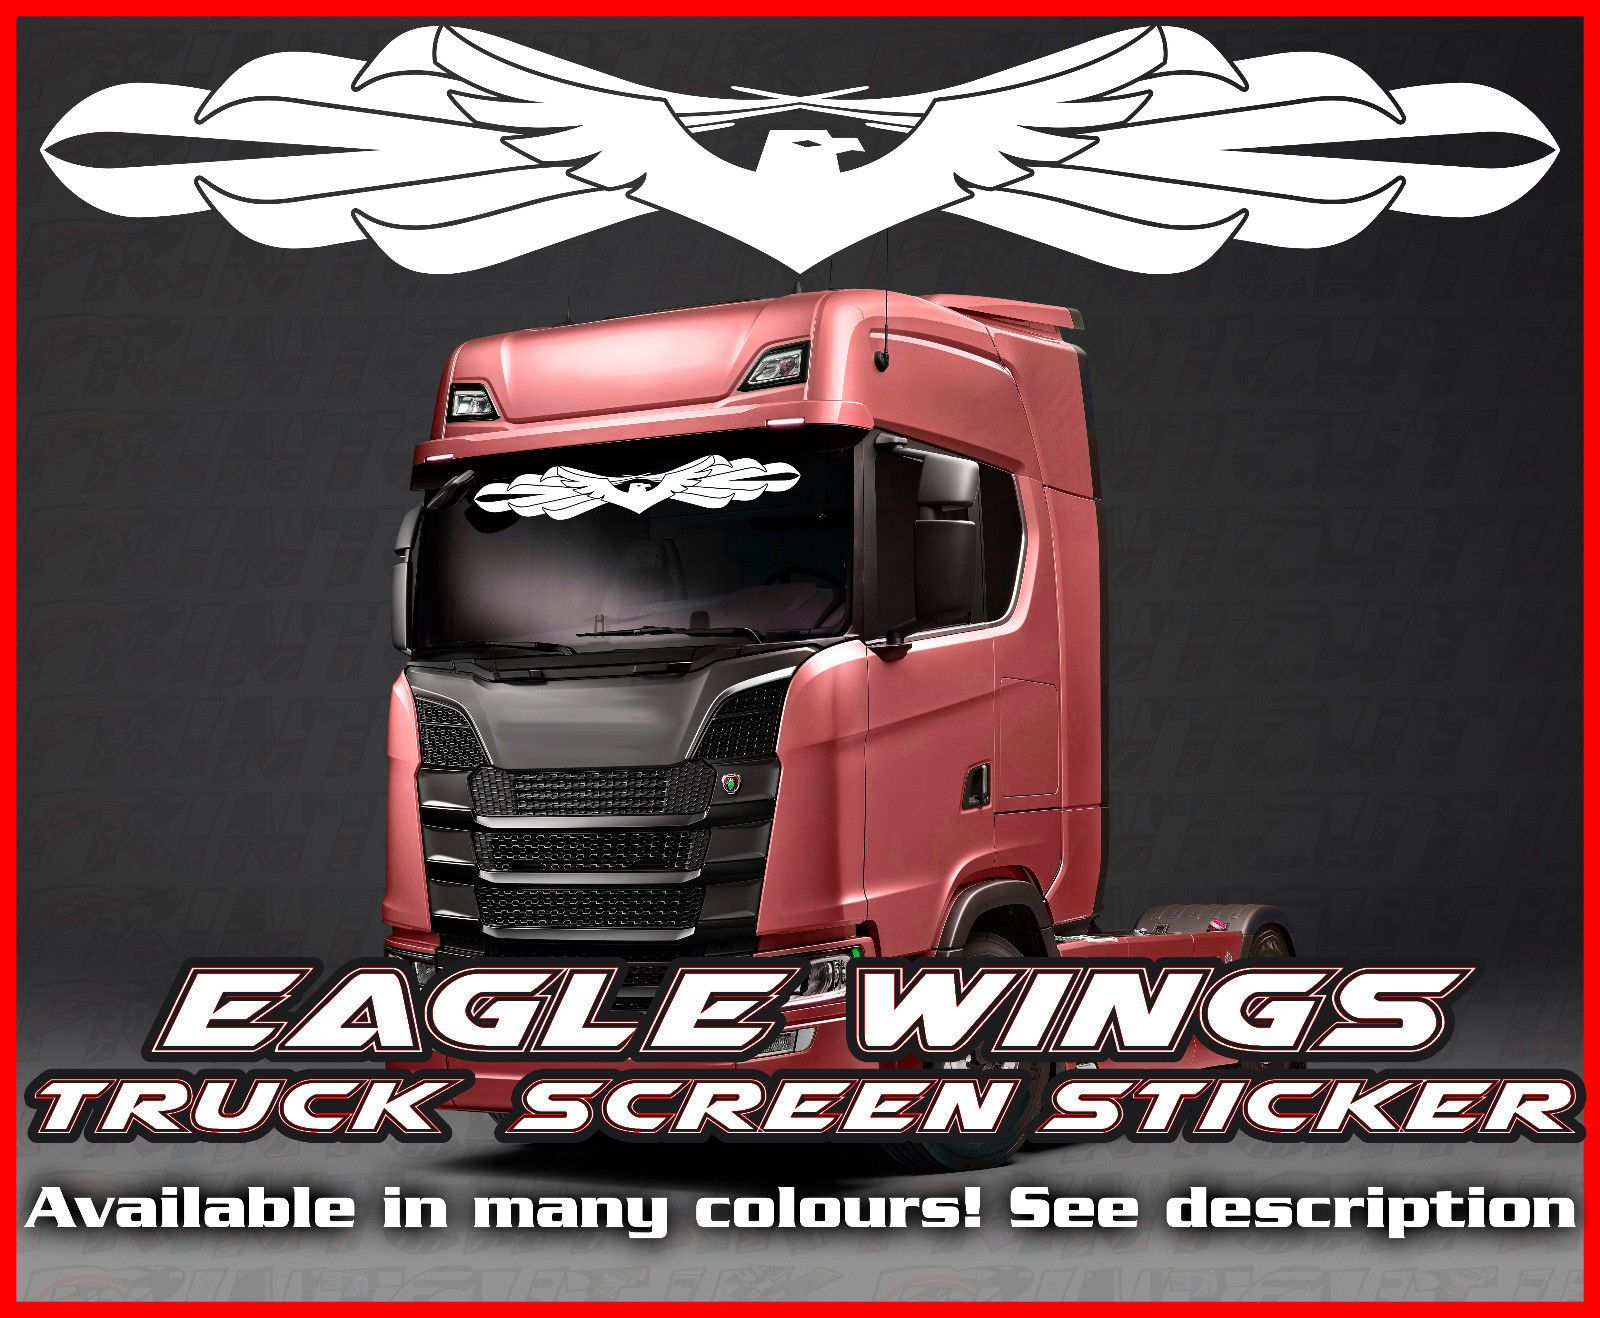 Daf Scania Eagle Wings Lorry Truck Screen Sticker Leyland Daf Man Scania